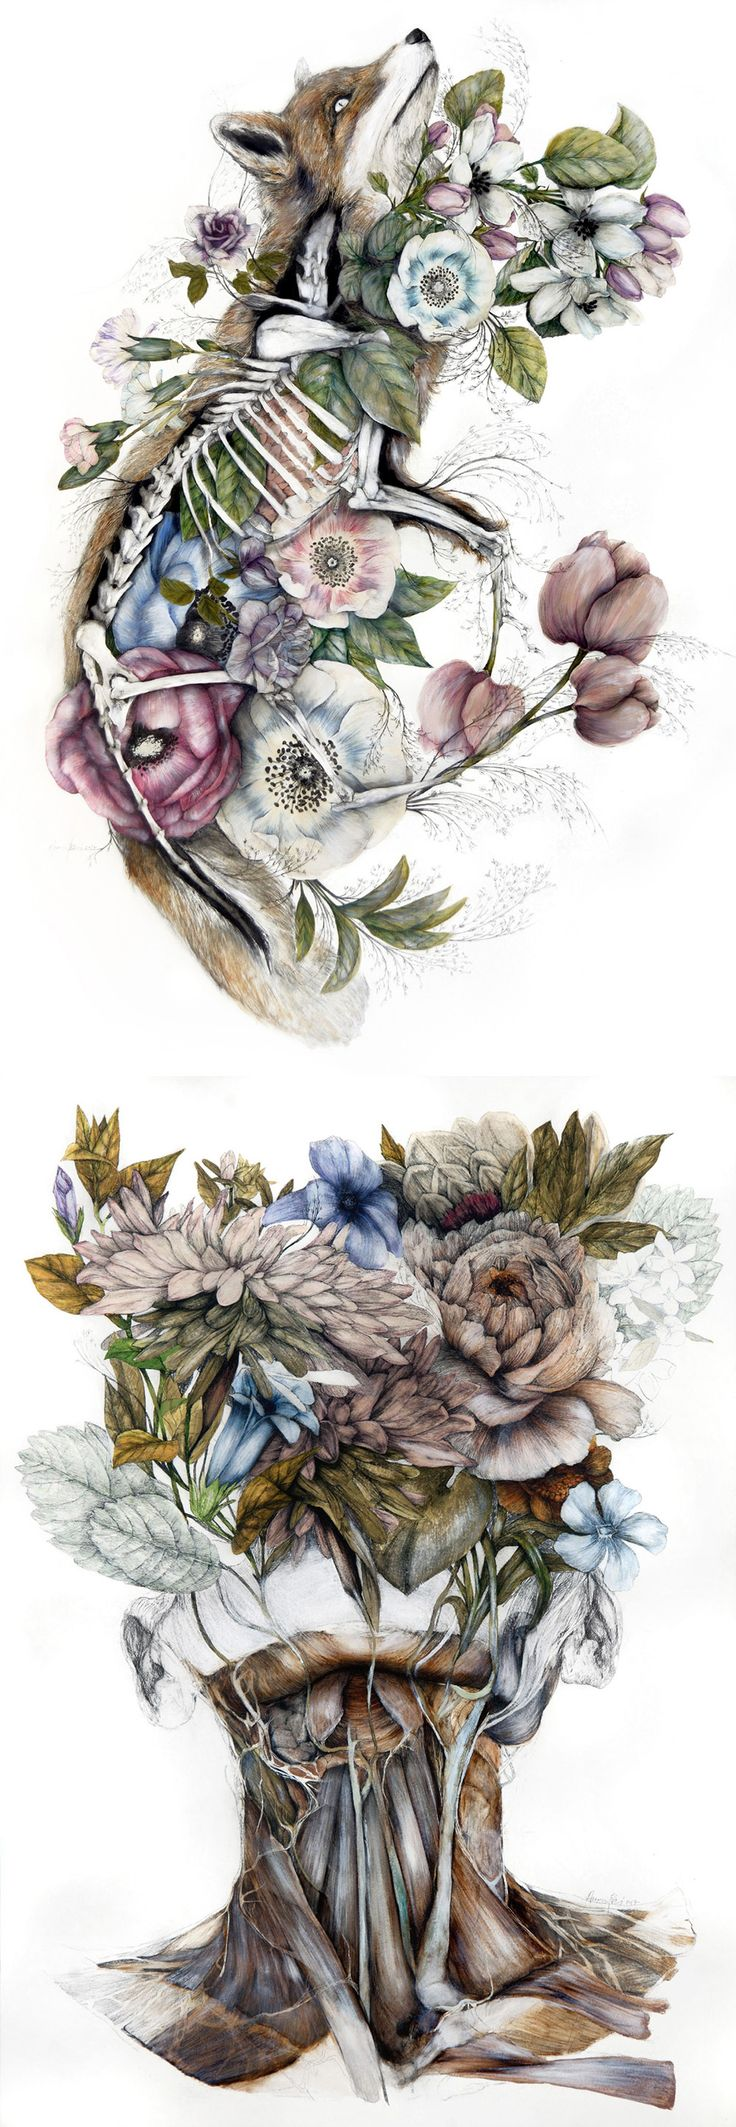 Mimesis: New Anatomical Paintings Depicting Flora and Fauna by Nunzio Paci